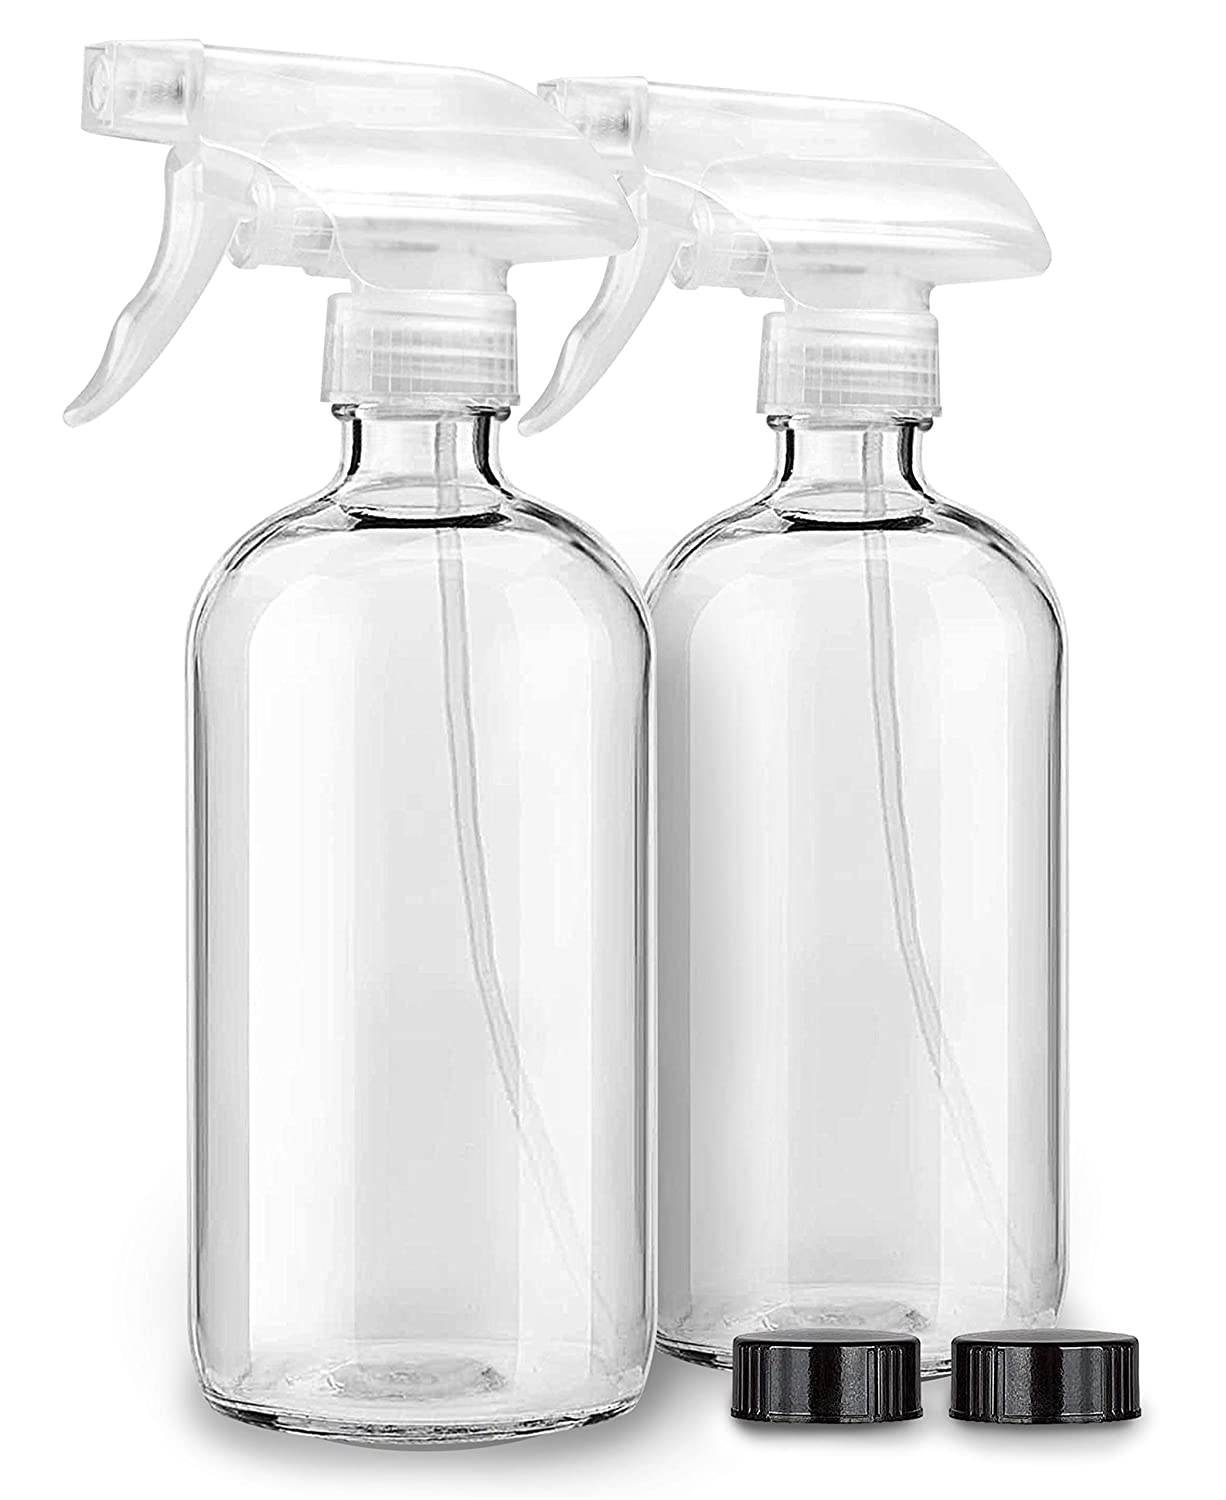 2 Pack Clear Glass Spray Bottles For Cleaning Solutions & Essential Oils - 16oz Empty Refillable Heavy Duty Container Bottle for Aromatherapy, Kitchen, Cooking, Hair & Perfumes - Mist & Stream Sprayer